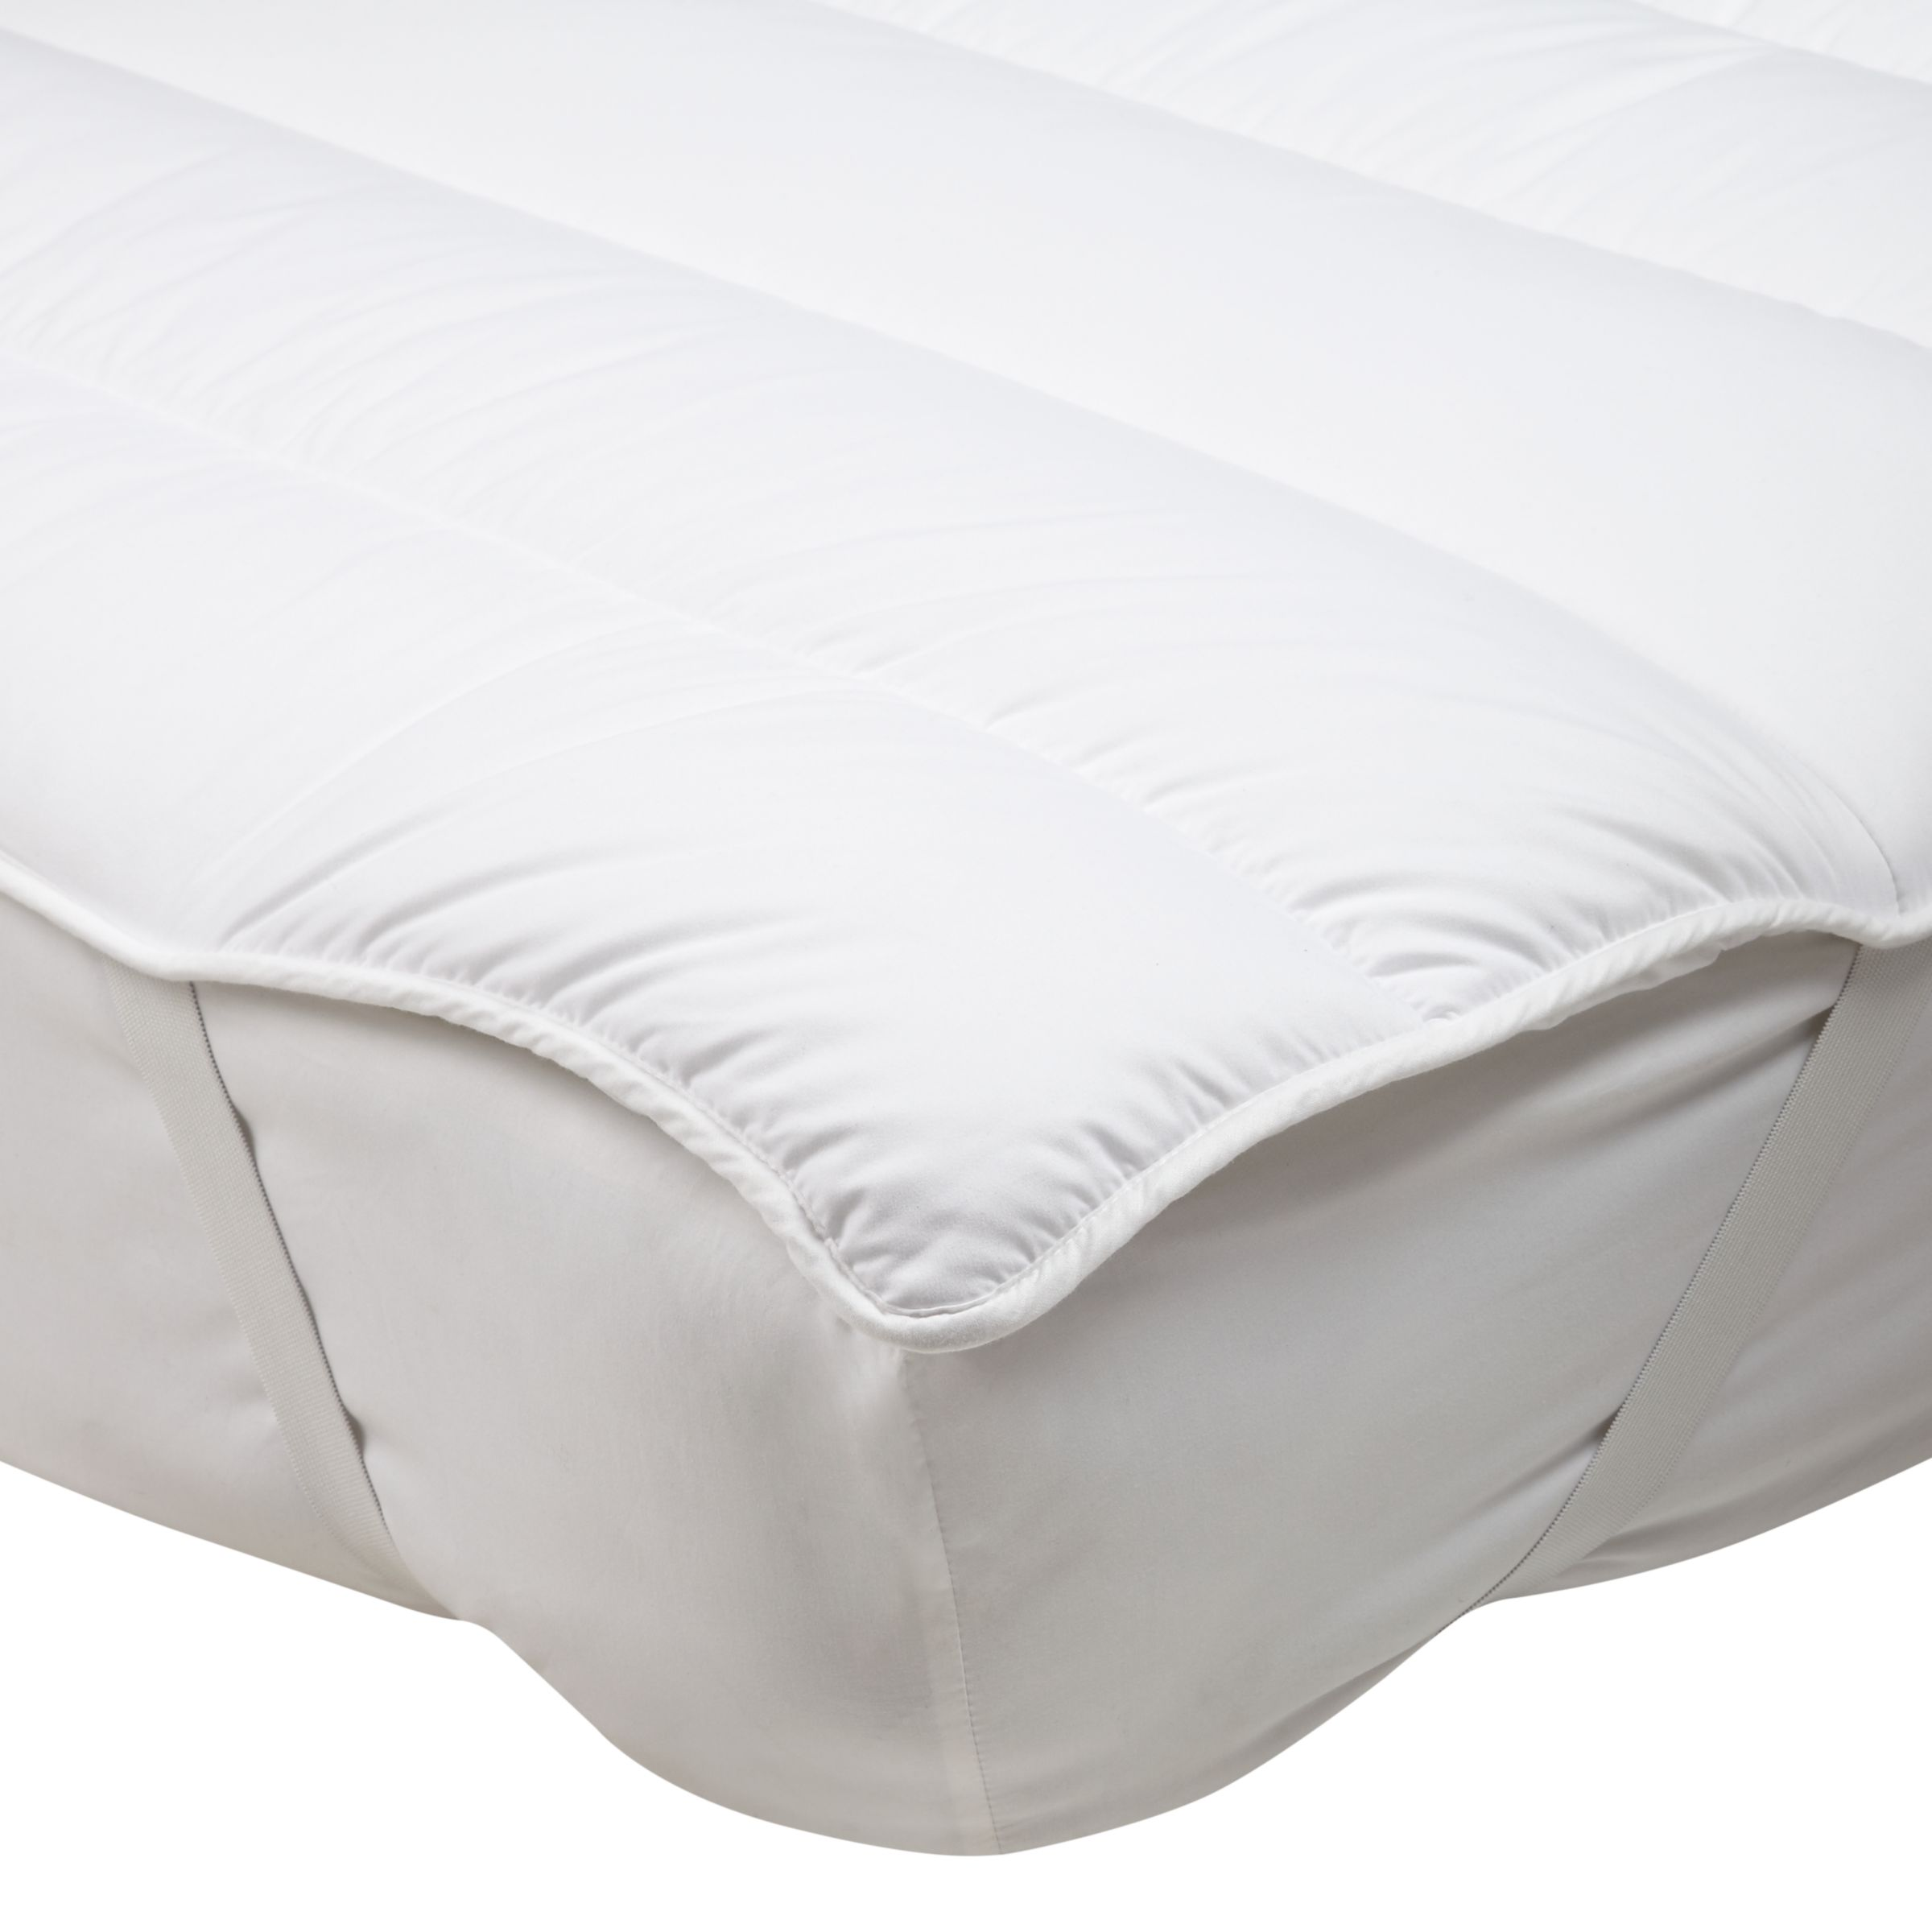 John Lewis Soft and Washable Mattress Enhancer